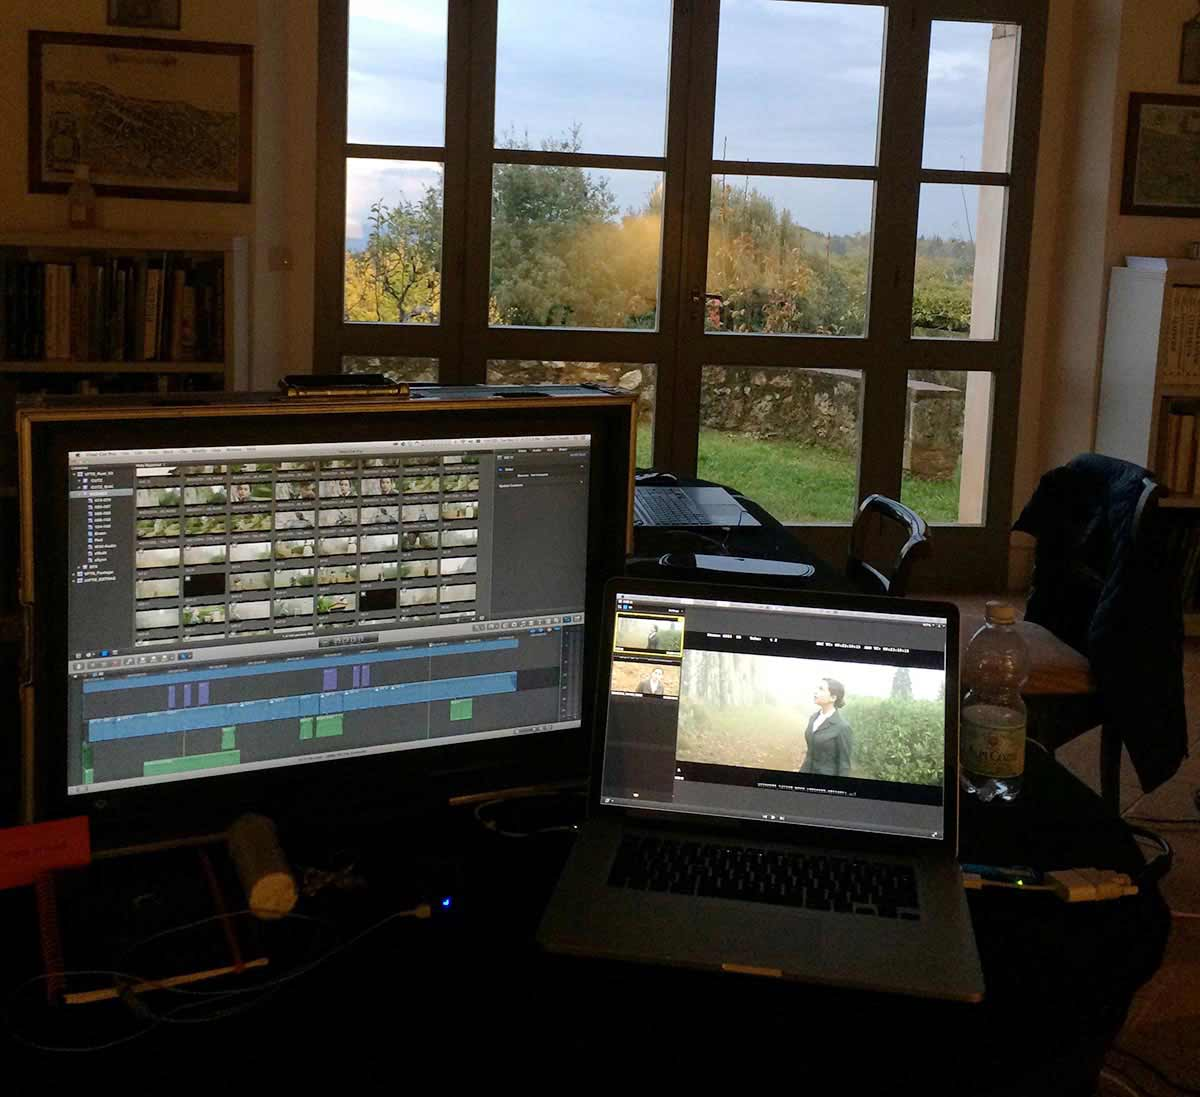 oliver peters steve bayes fcpx 15